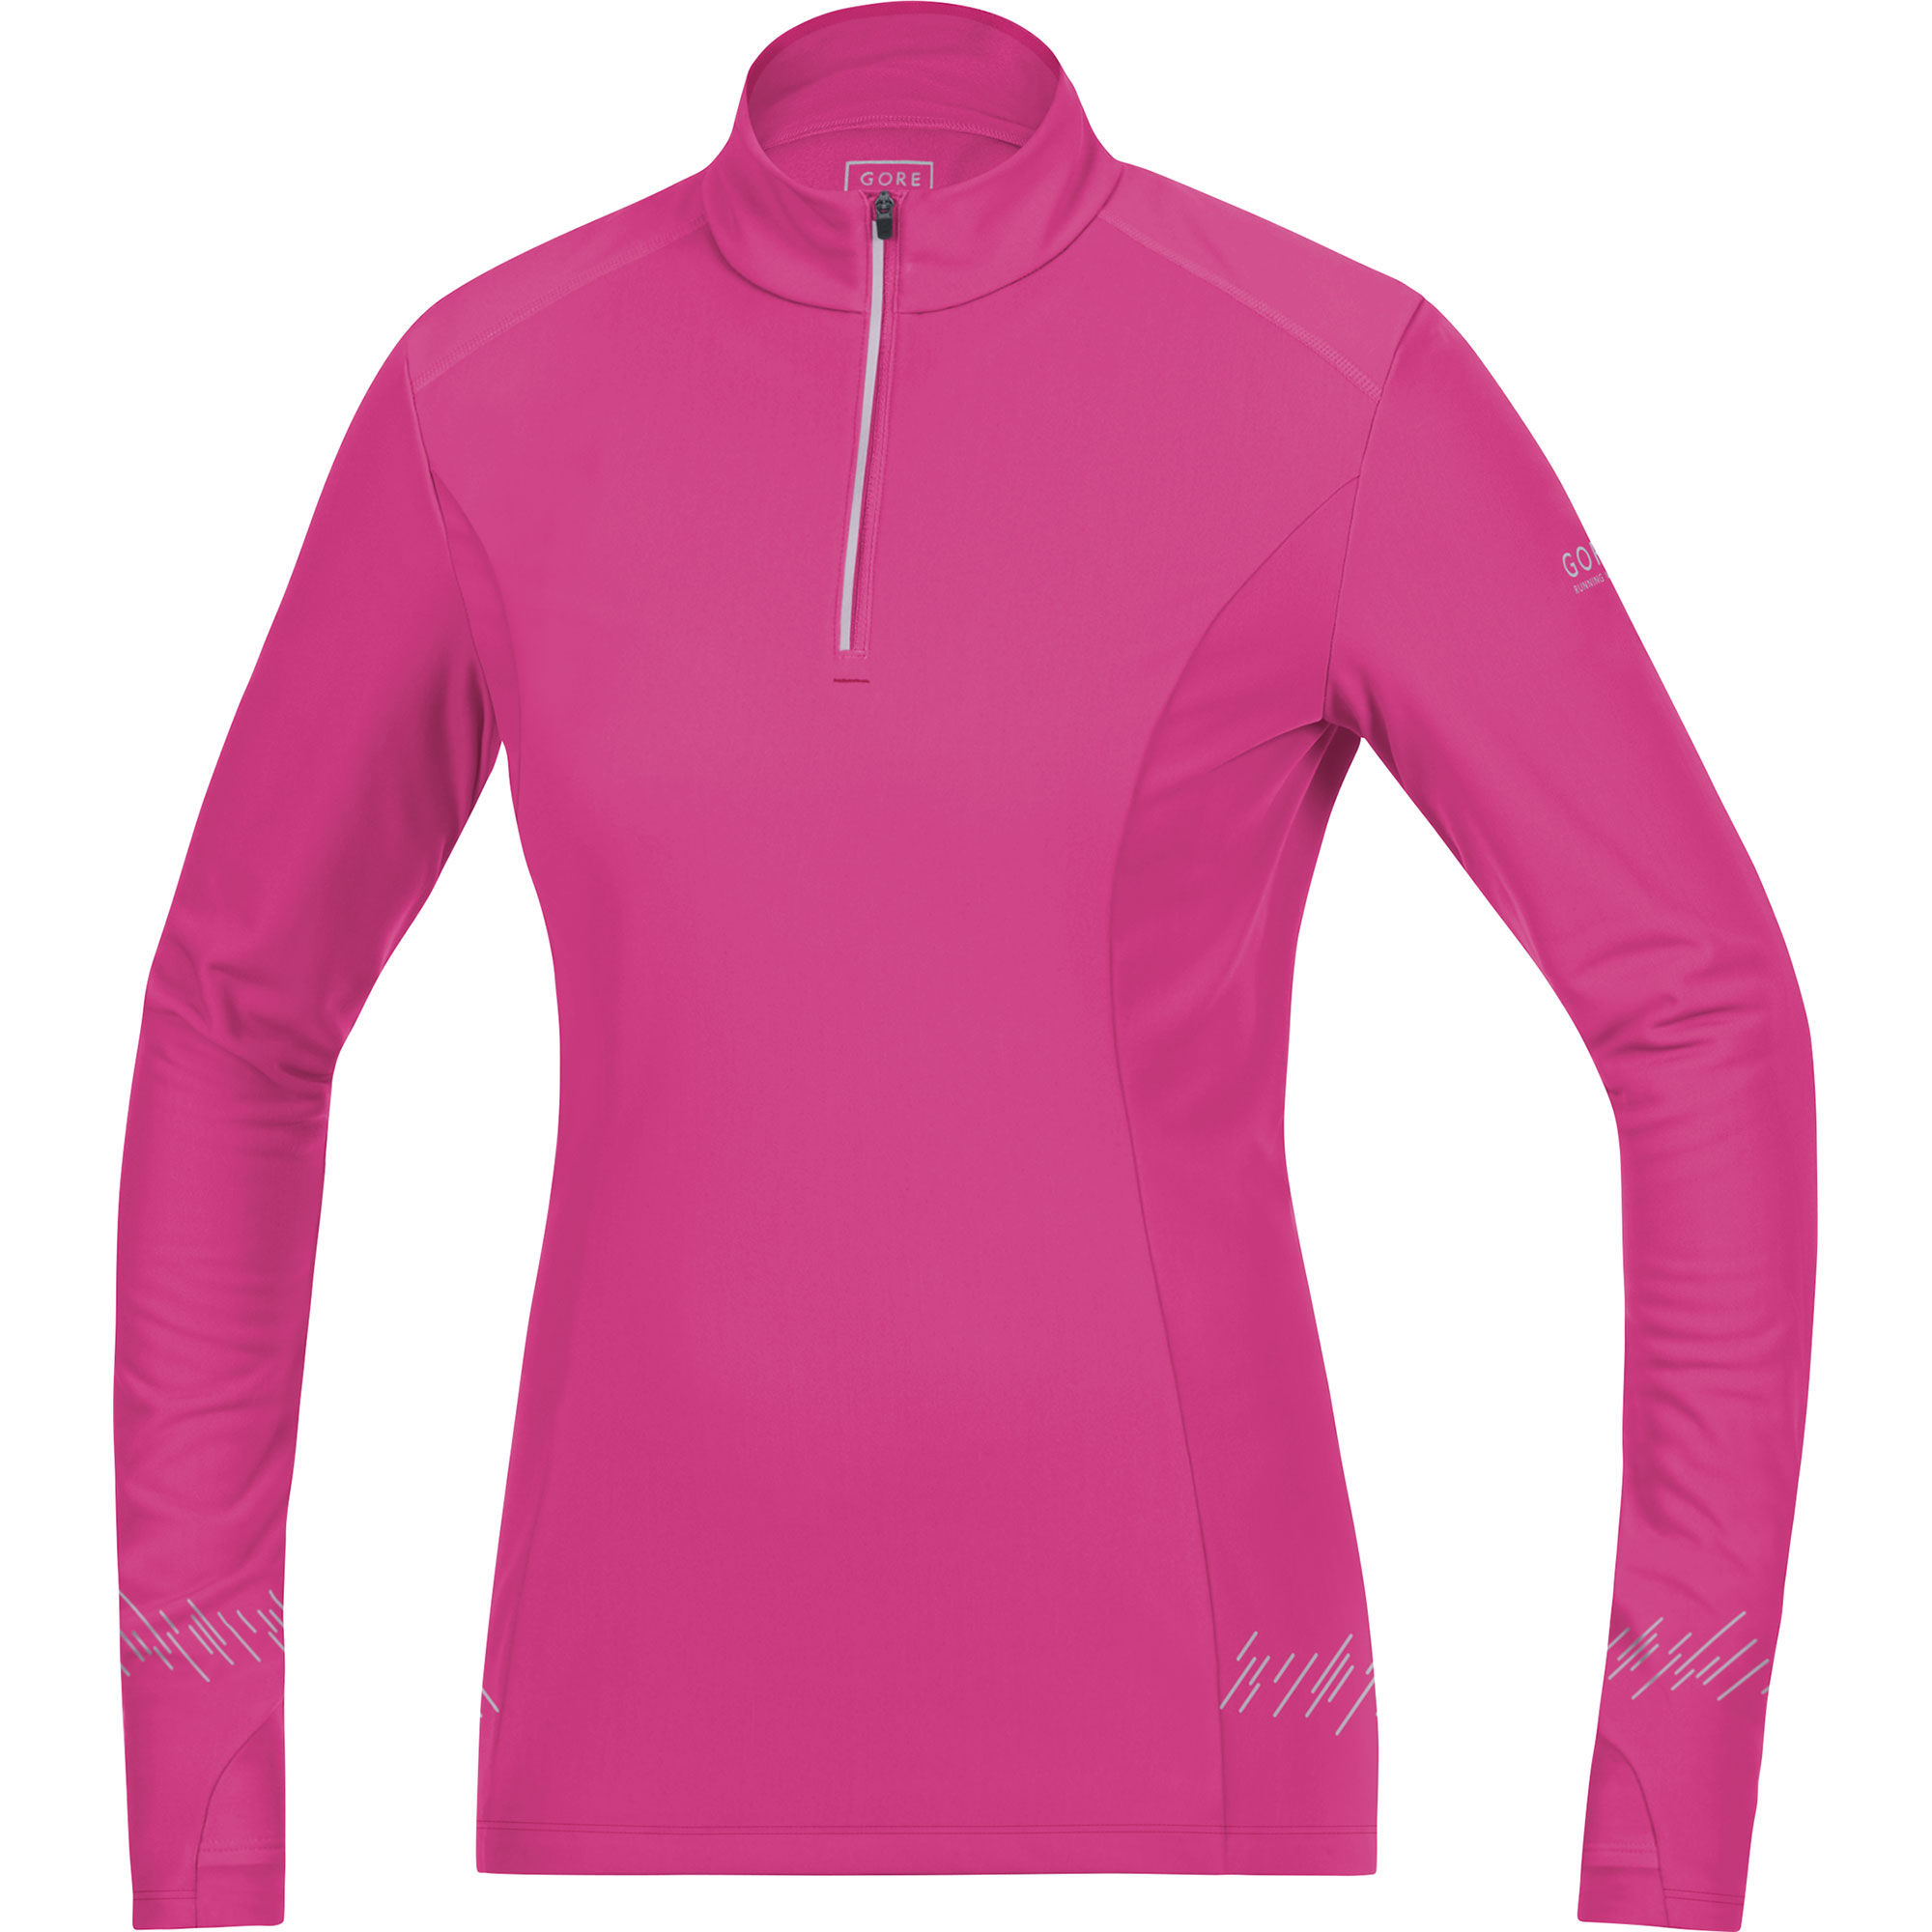 Gore Mythos Lady 2.0 Thermo Shirt in Blau